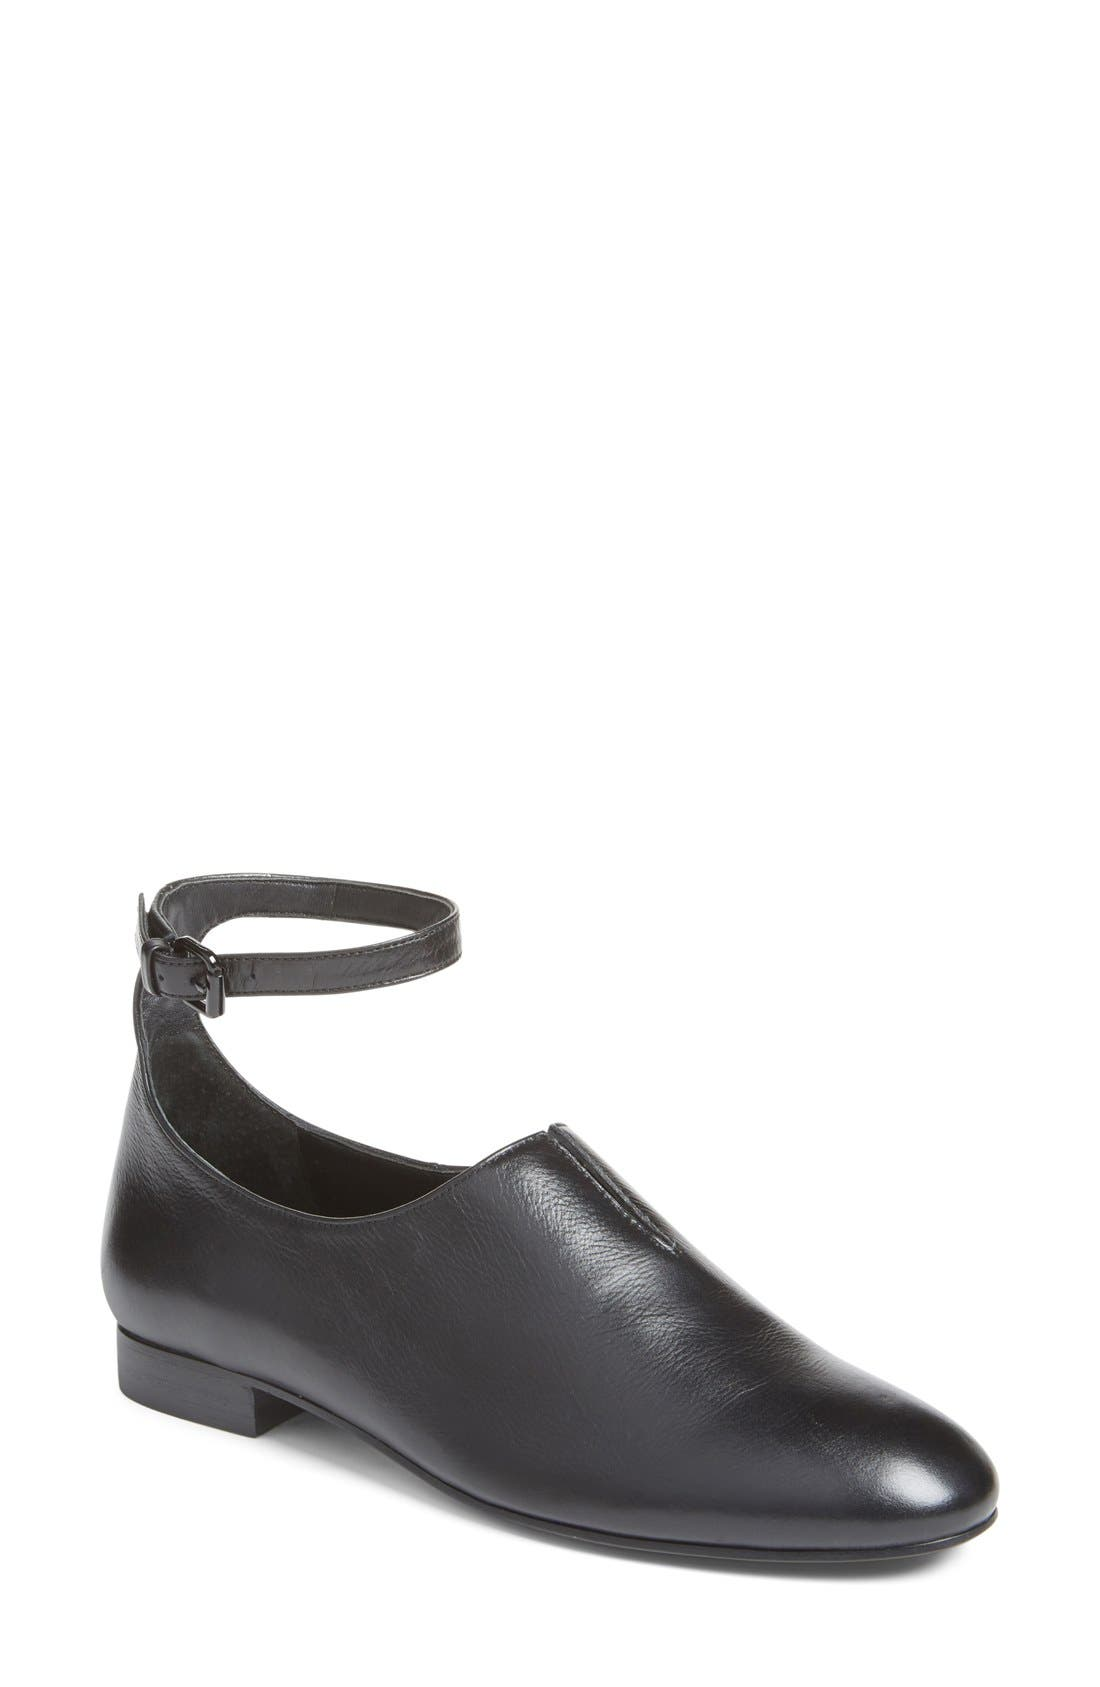 OPENING CEREMONY Norrah Ankle Strap Flat